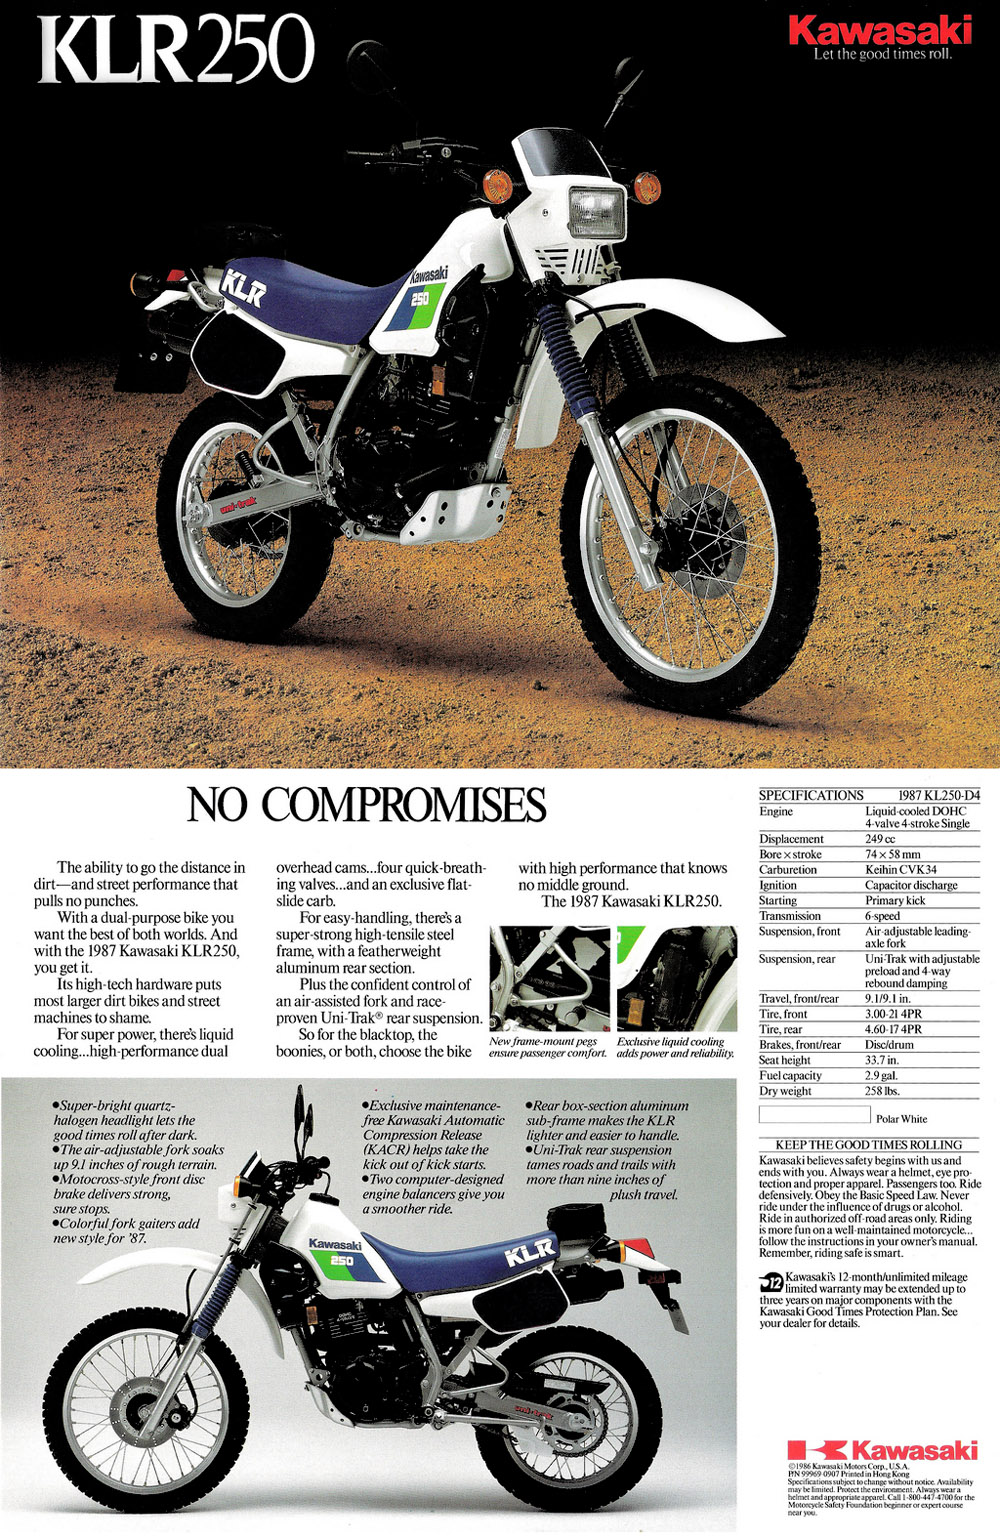 klr 250 wiring diagram free download schematic wiring library1987 kawasaki klr250 sales brochure kawasaki klr250 1987 kawasaki klr250 sales brochure klr 250 wiring diagram